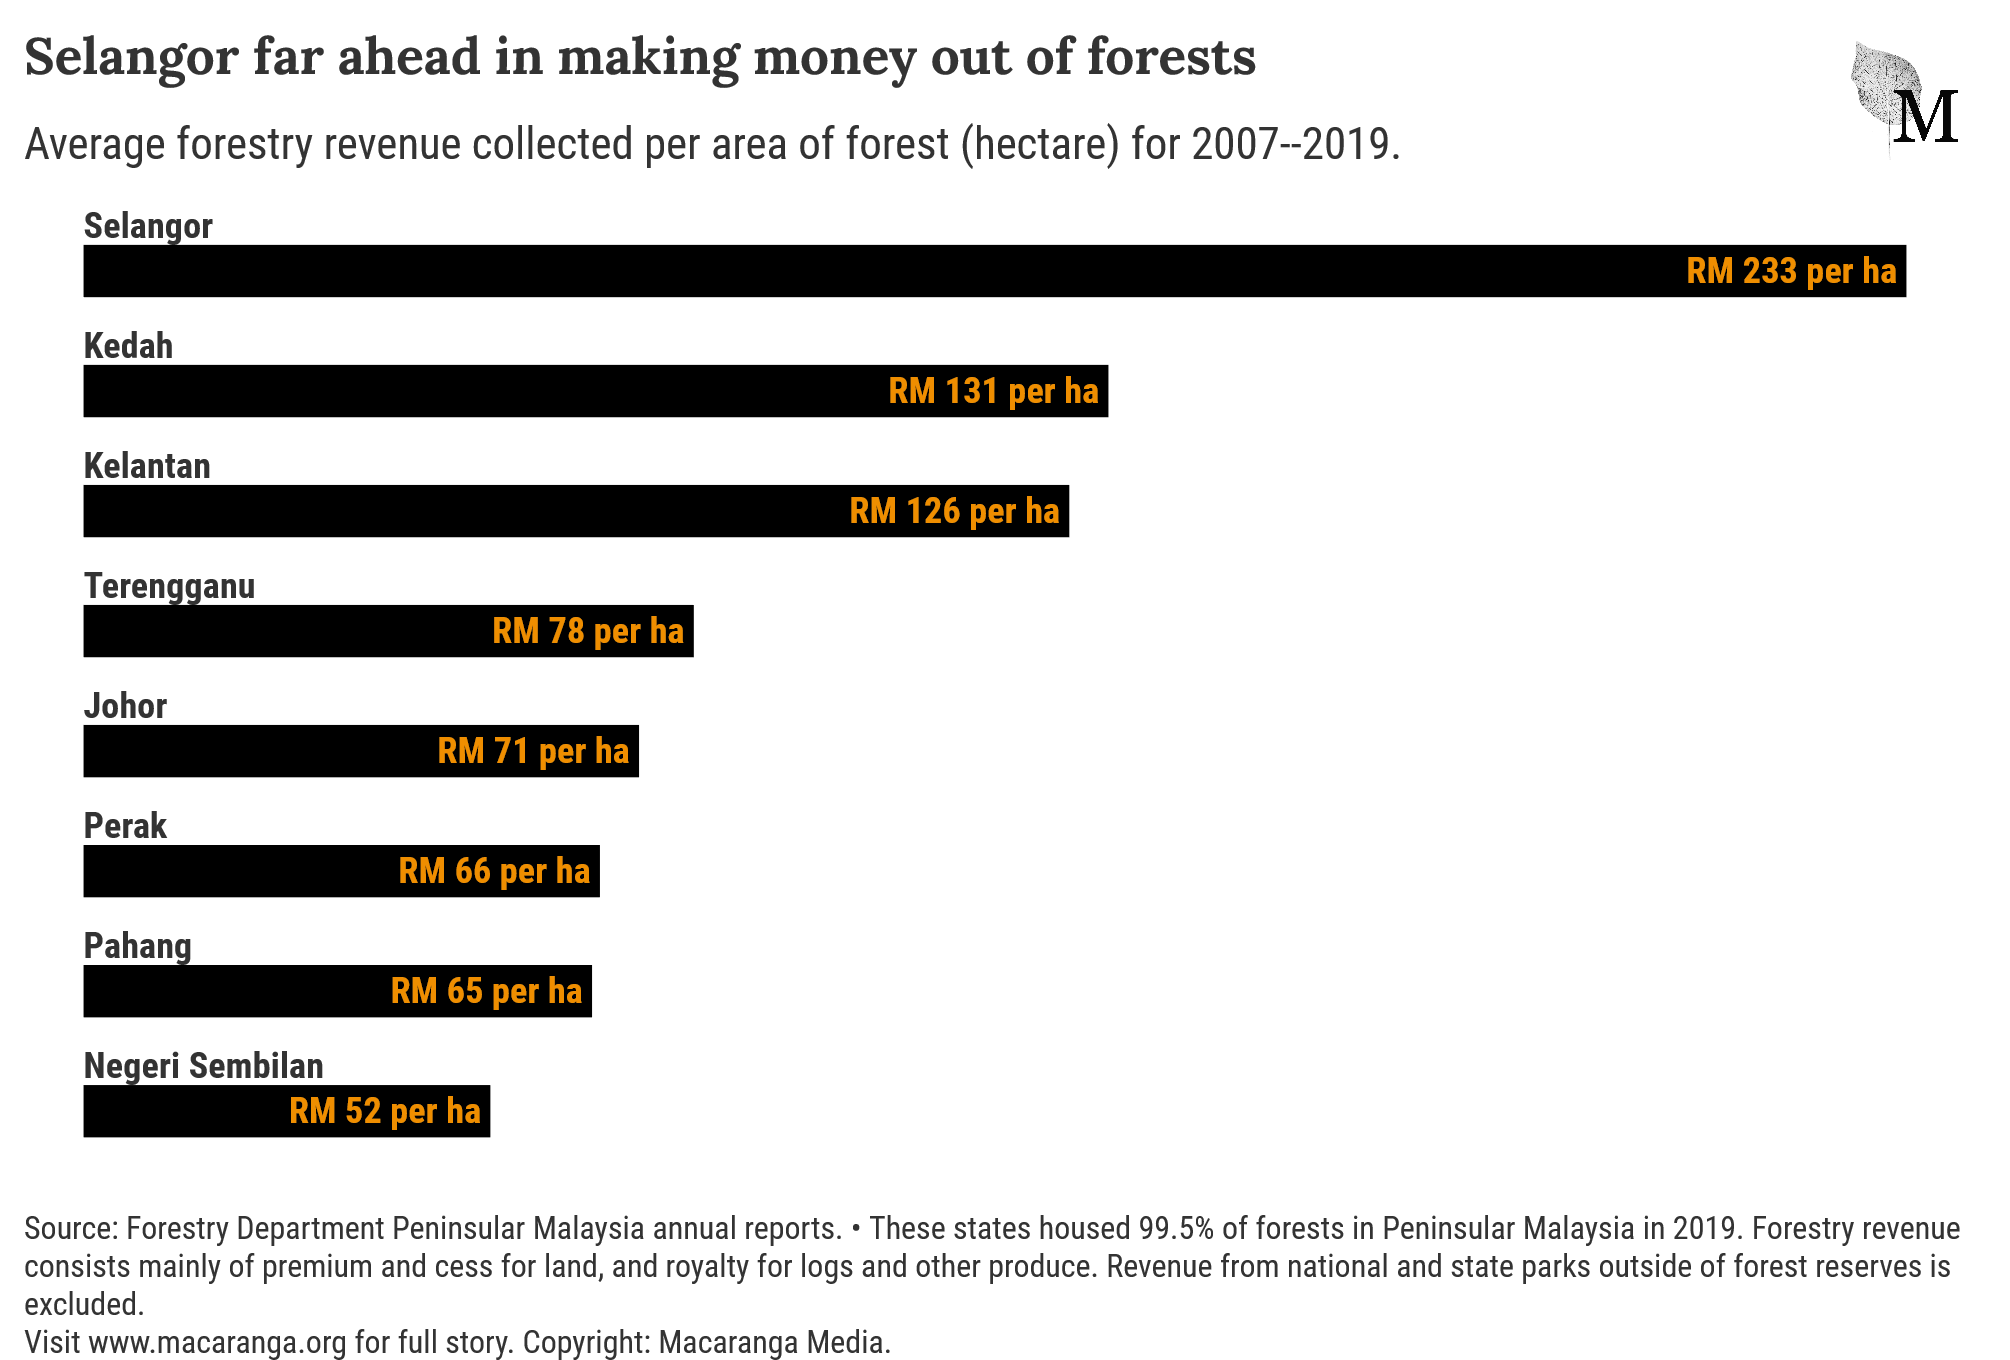 Selangor was the most effective state in generating revenue from its forest.